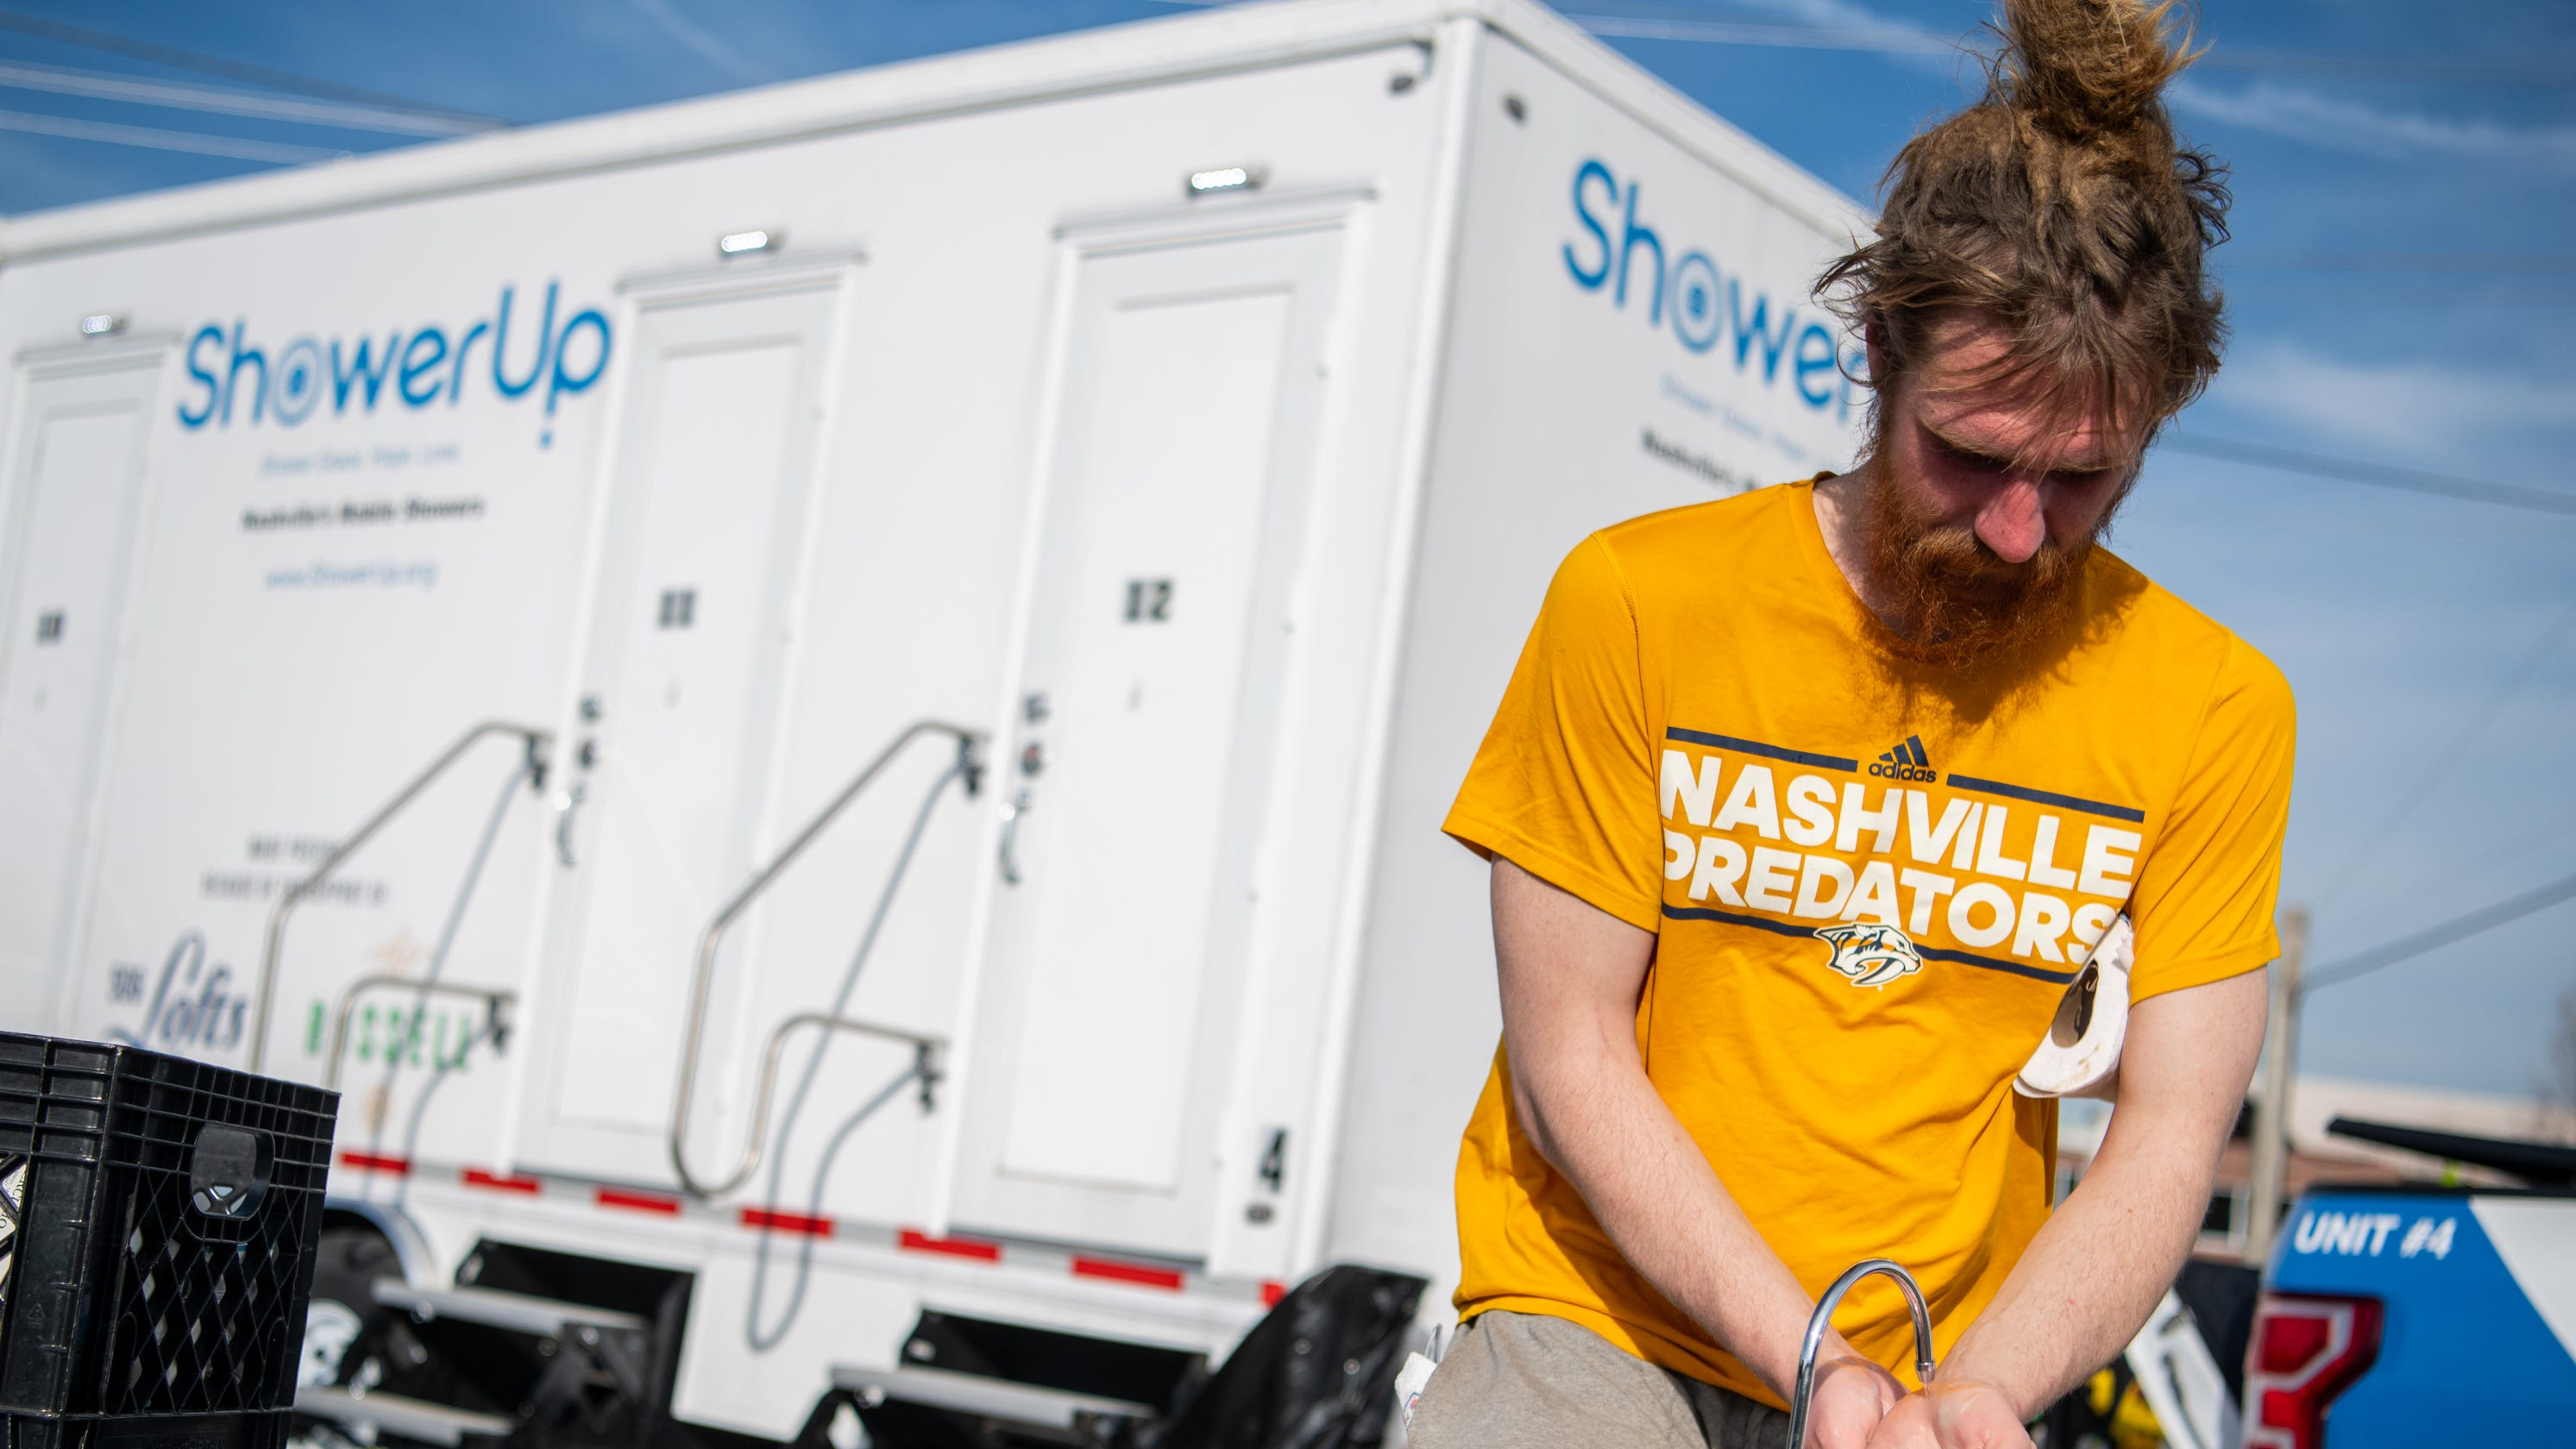 Mobile showers for the homeless were created by a guy who was afraid of people on the streets